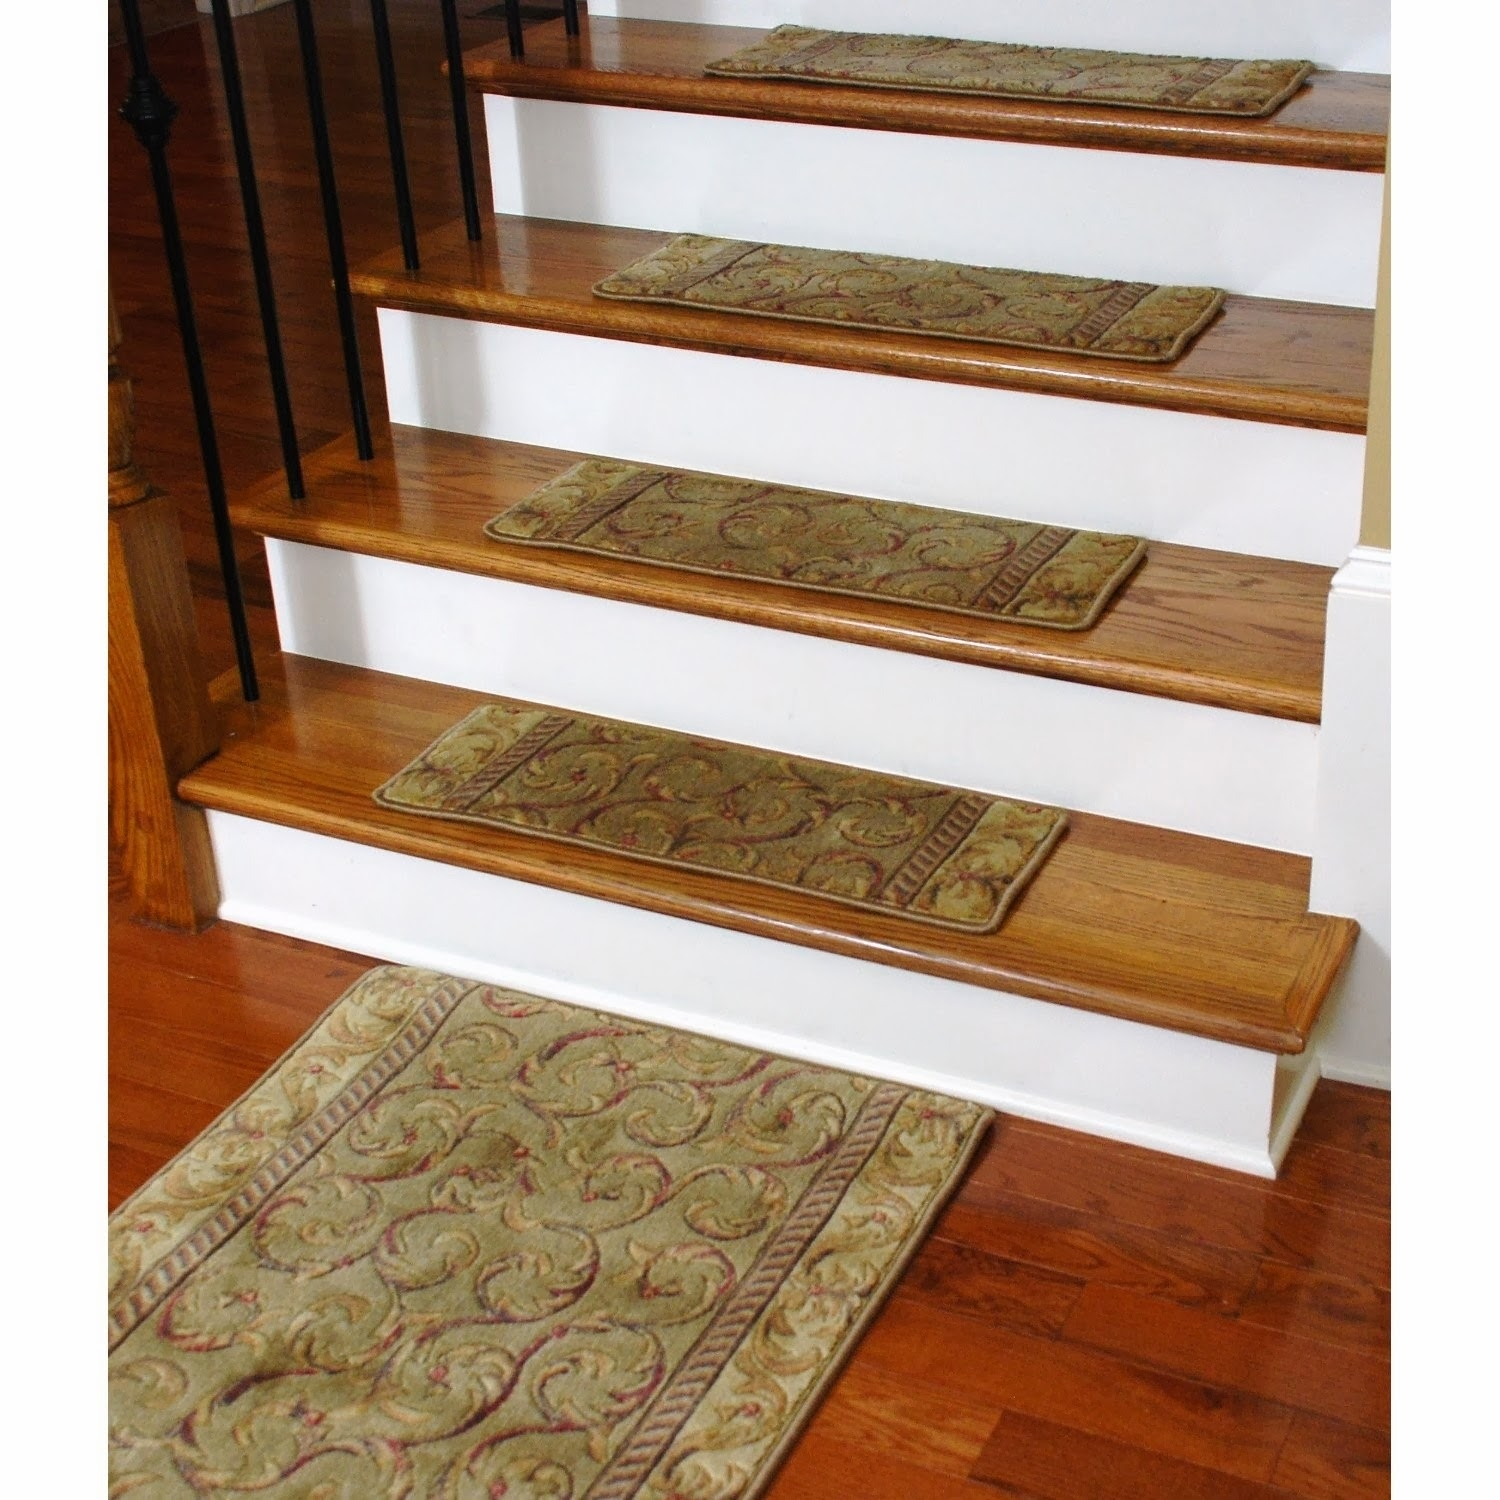 54 Stair Carpet Protectors Protector Carpets Inspirations Vinyl Intended For Carpet Protector Mats For Stairs (Image 4 of 15)